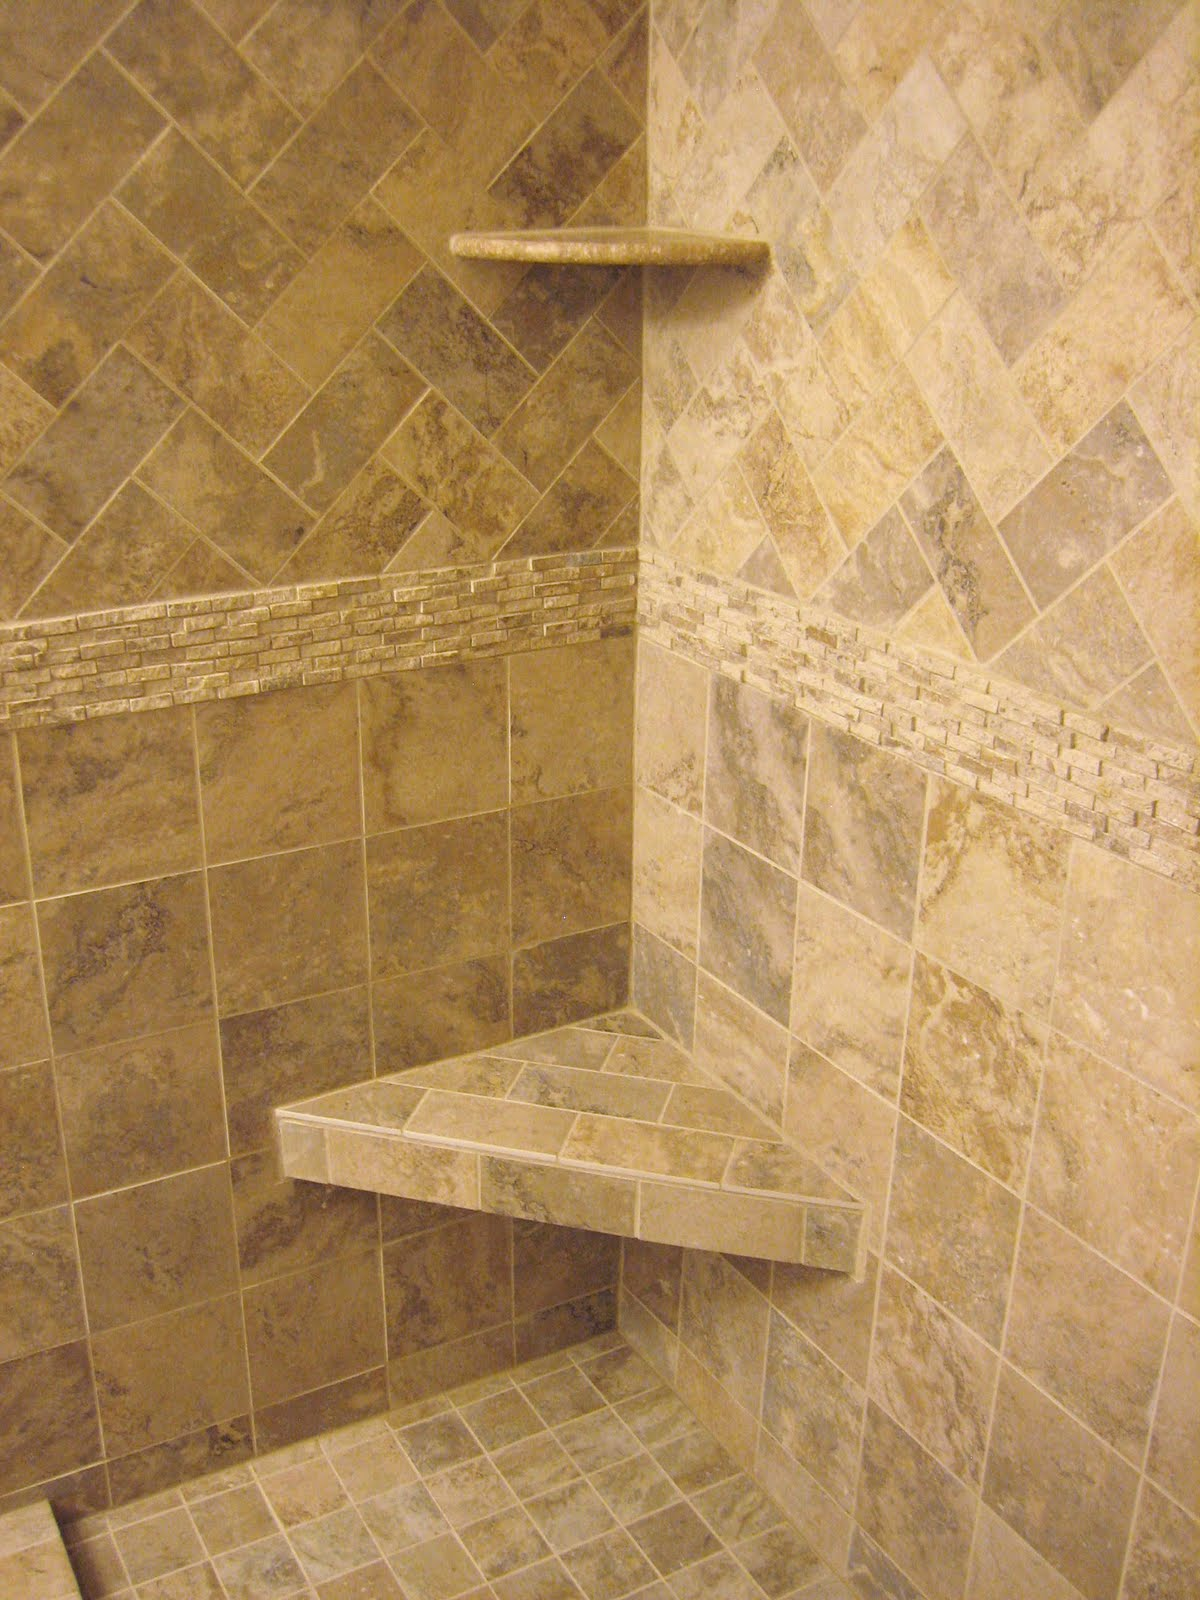 Hwinter showroom blog june 2010 for Small tiled showers